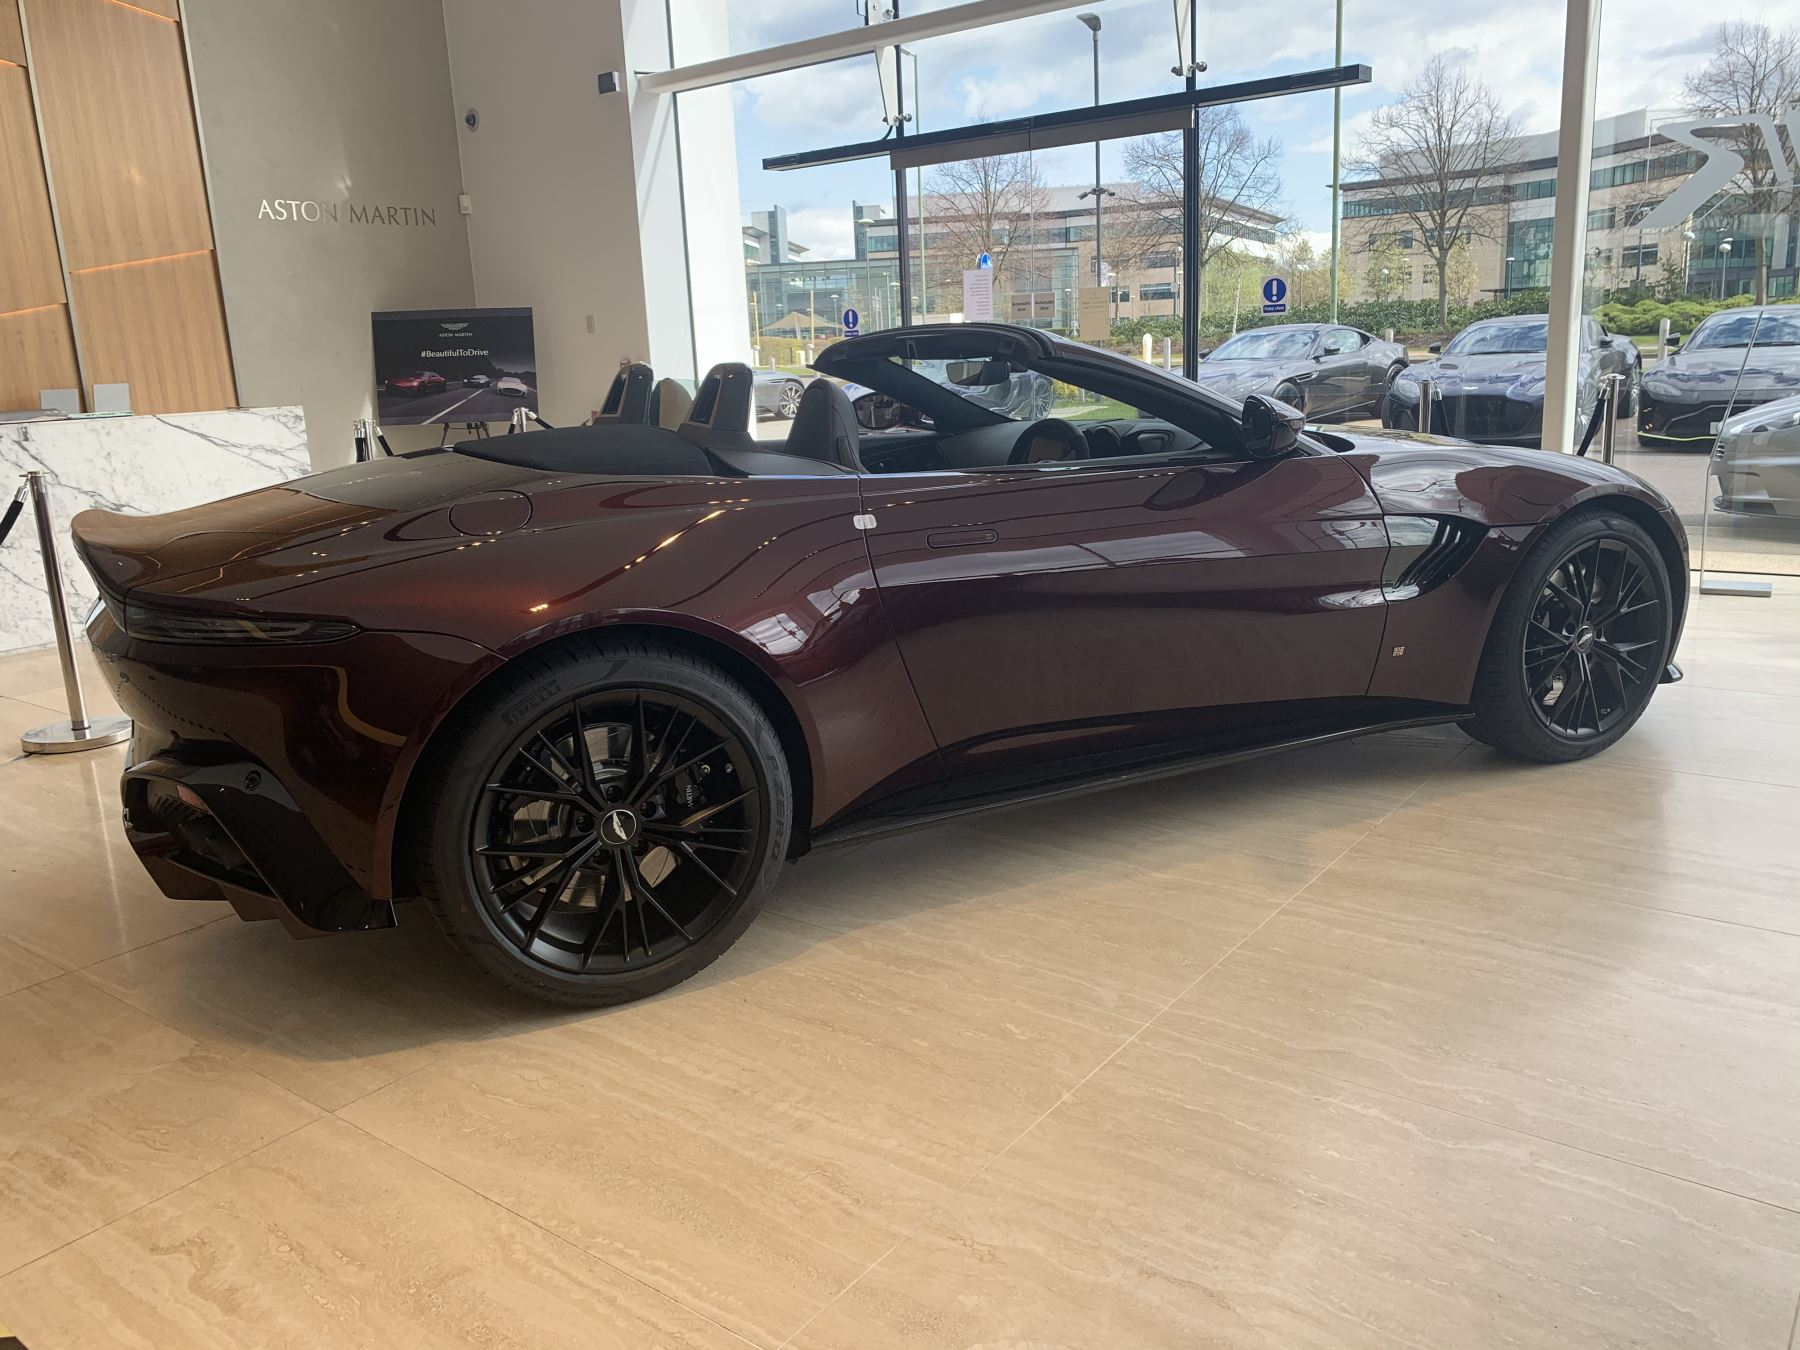 Aston Martin New Vantage Roadster Touchtronic 3 4.0 Automatic 2 door Roadster